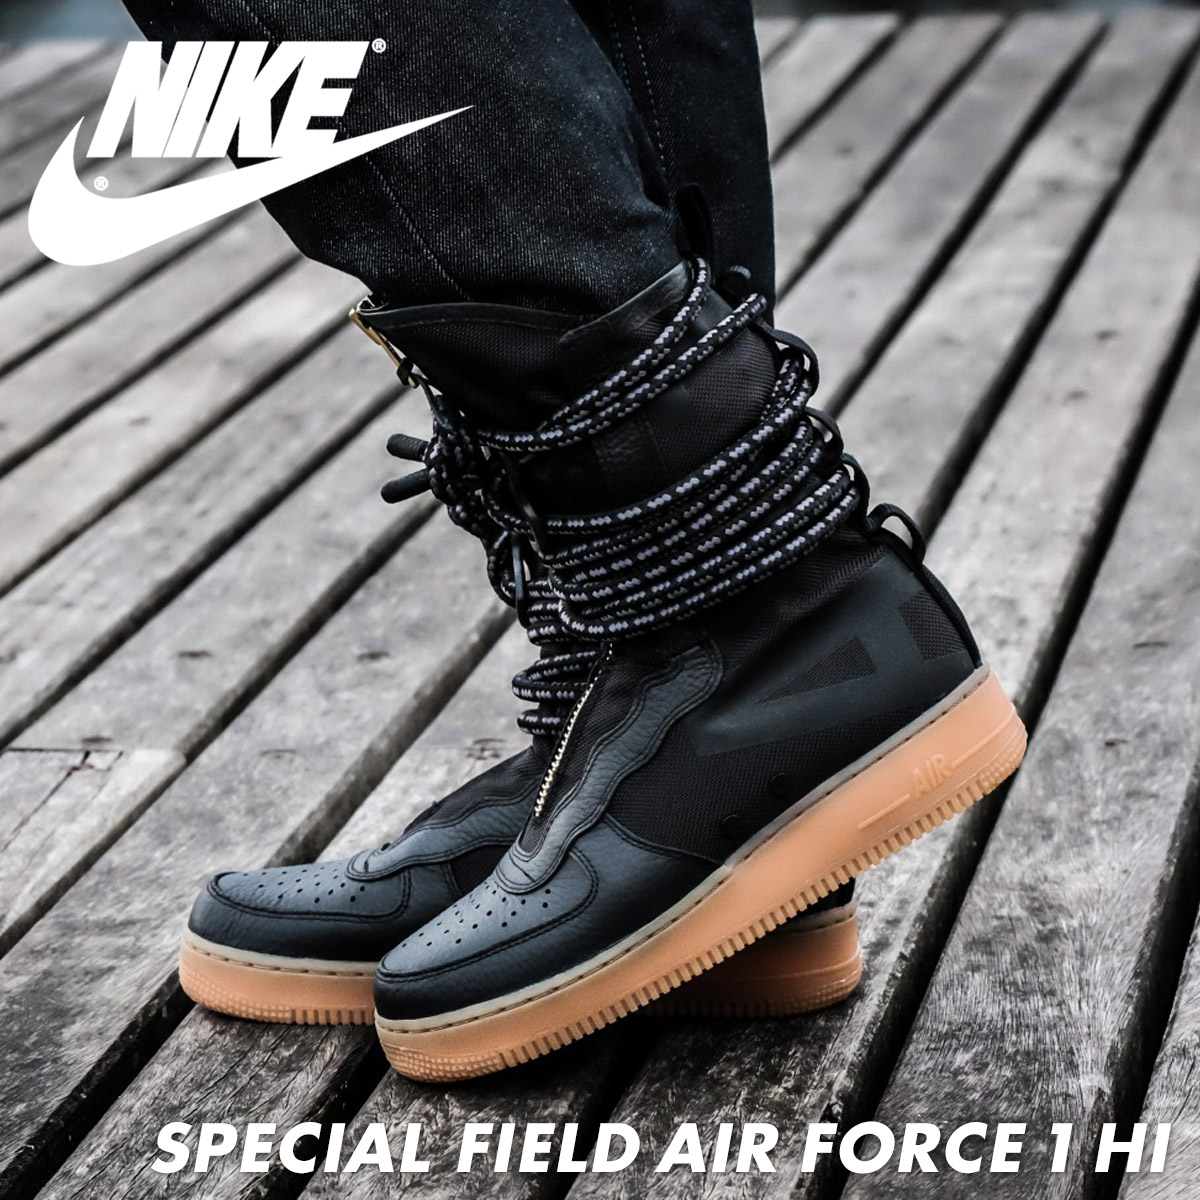 wholesale dealer 54dd1 c0d83 NIKE SPECIAL FIELD AIR FORCE 1 HI Nike air force 1 sneakers special field  AA1128-001 SF AF1 men shoes black  load planned Shinnyu load in reservation  ...